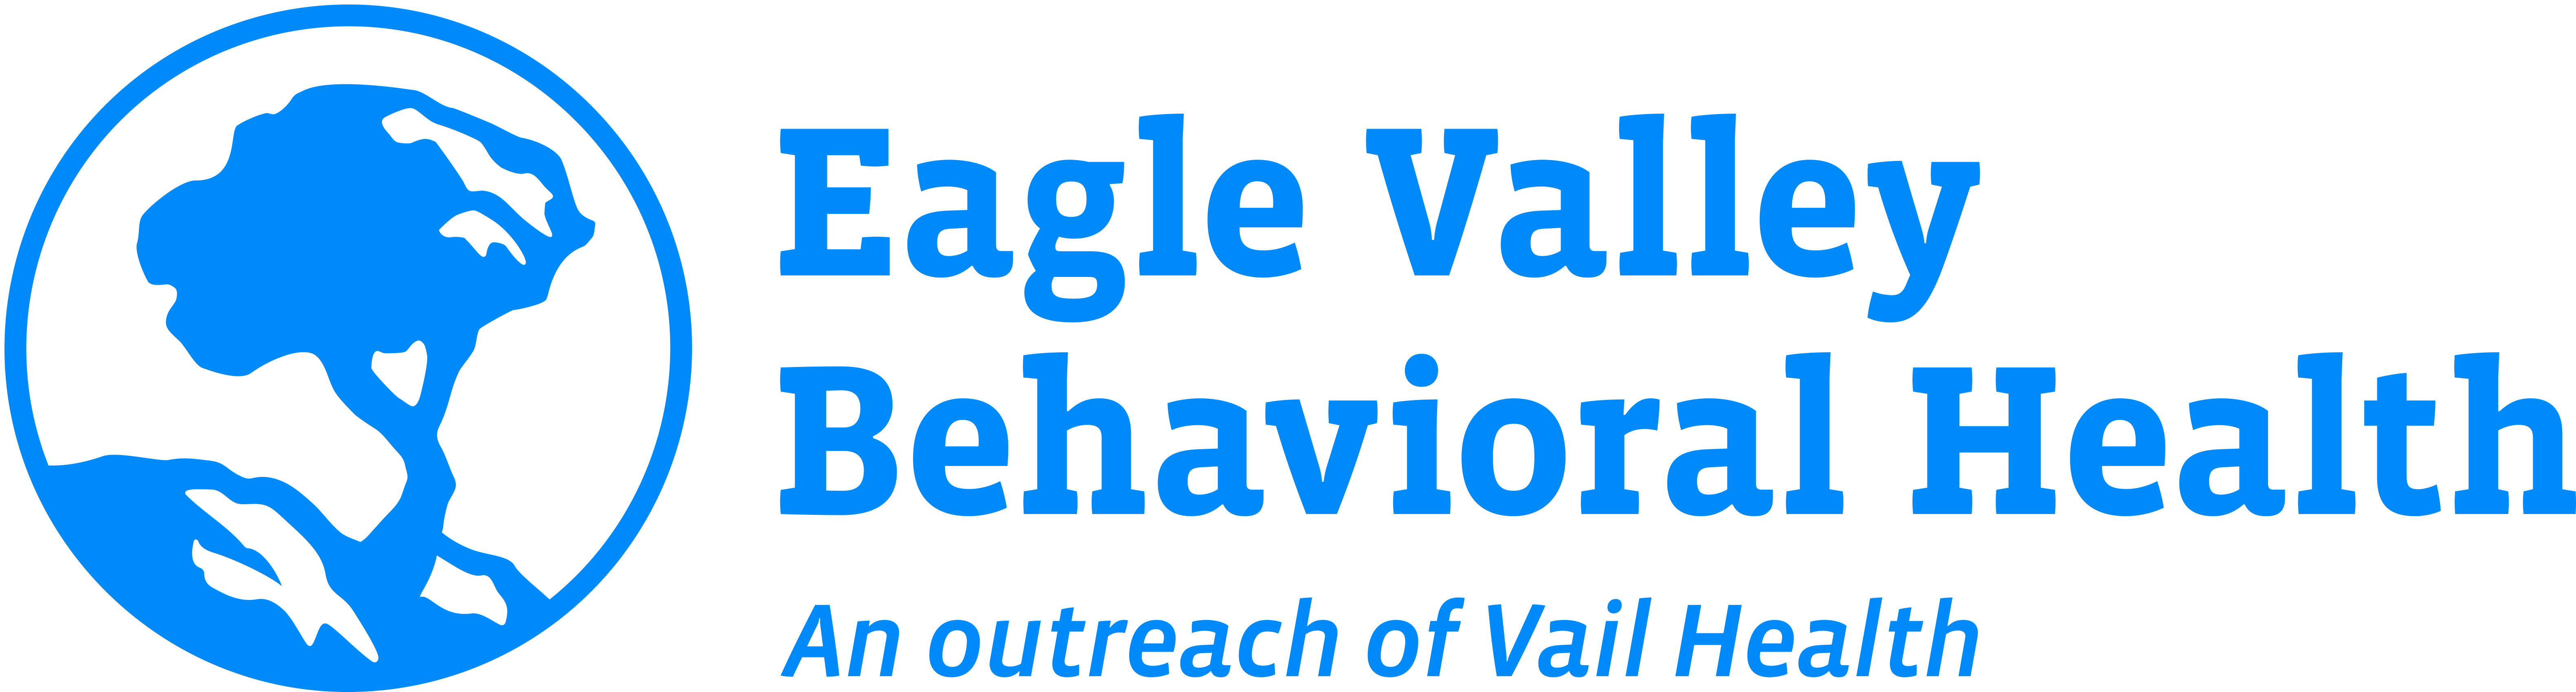 Eagle Valley Behavioral Health